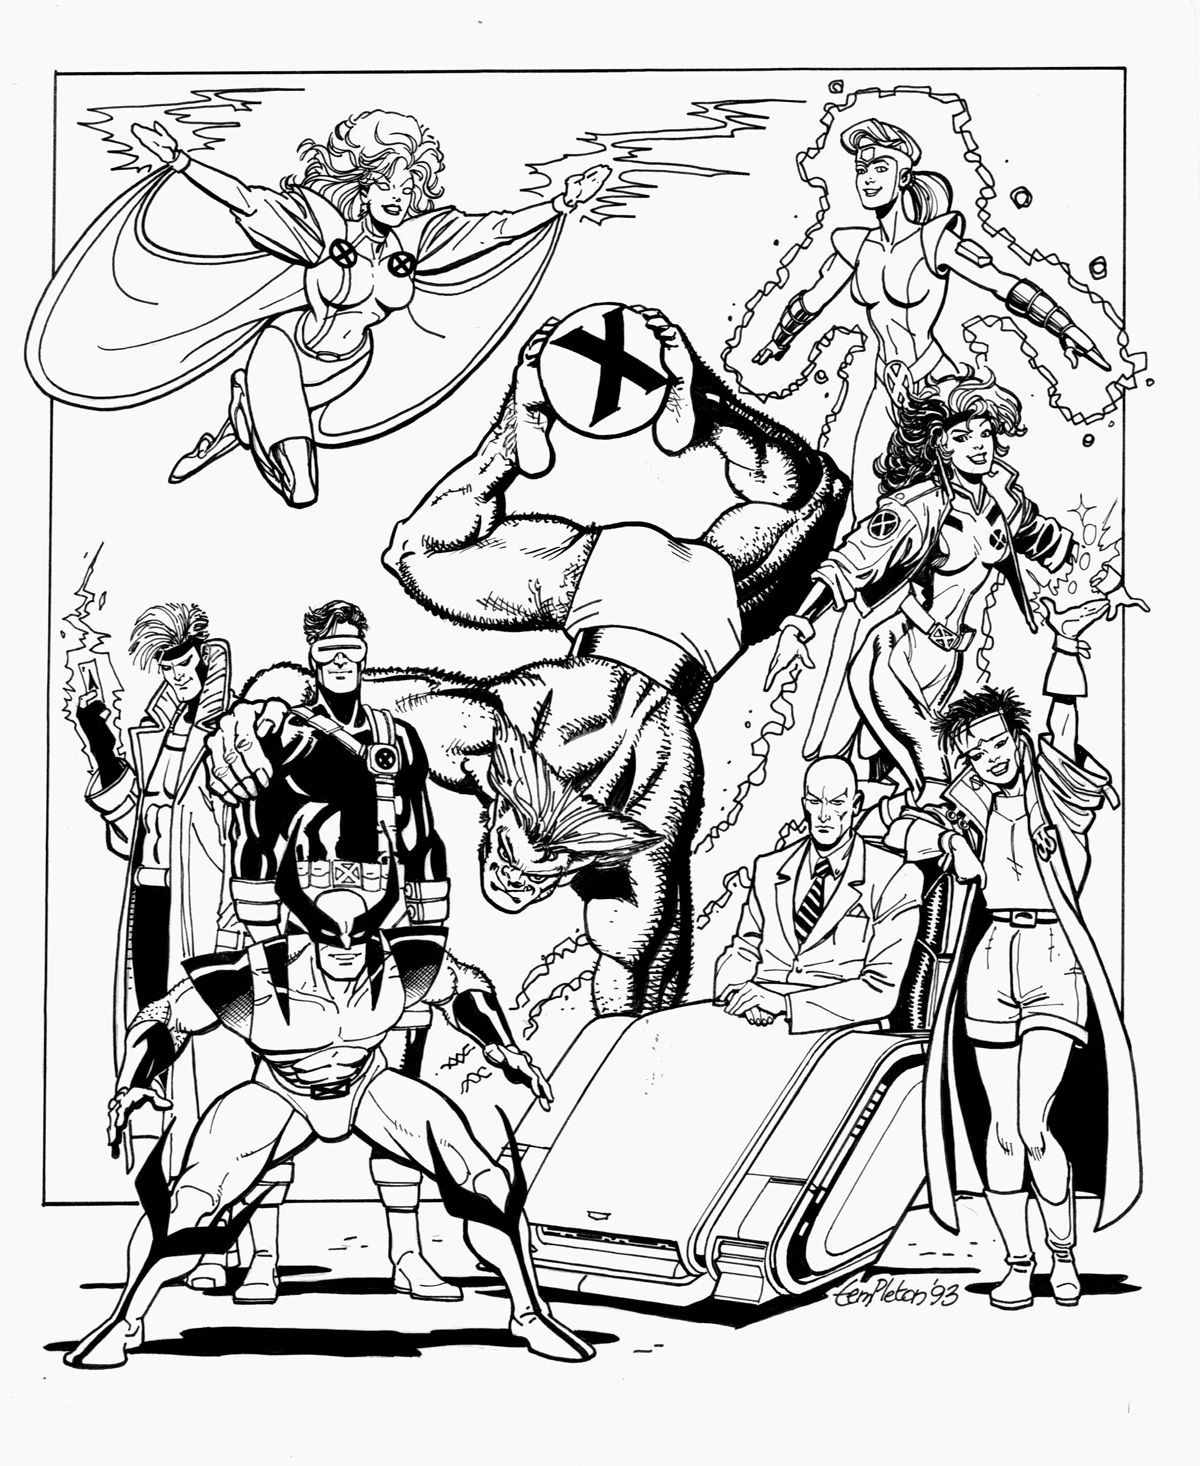 X Men Coloring Page : coloring, Superheroes,, Gallery, Books, Superhero, Coloring, Pages,, Coloring,, Cartoon, Pages